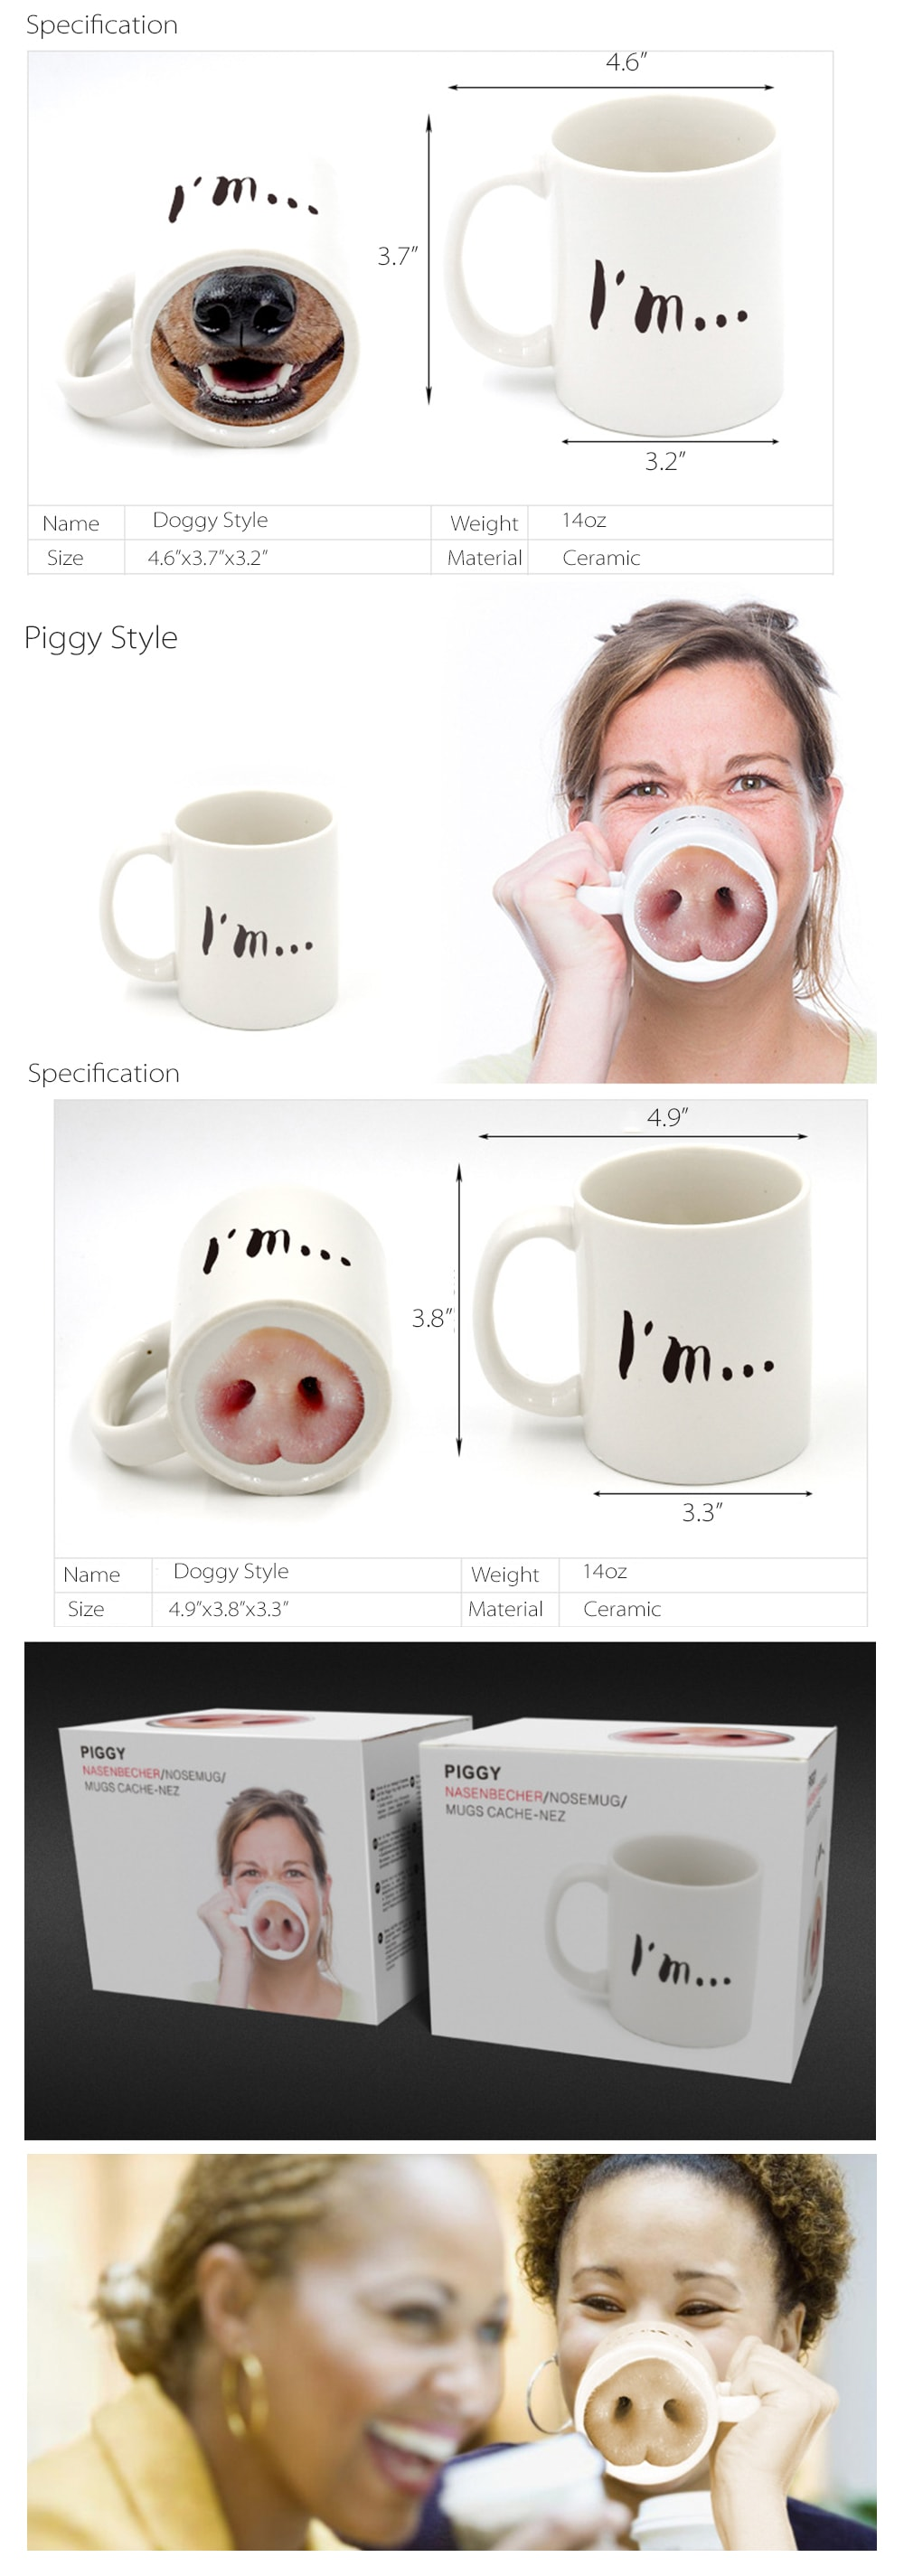 Doggy And Piggy Mug Drinking Makes Fun